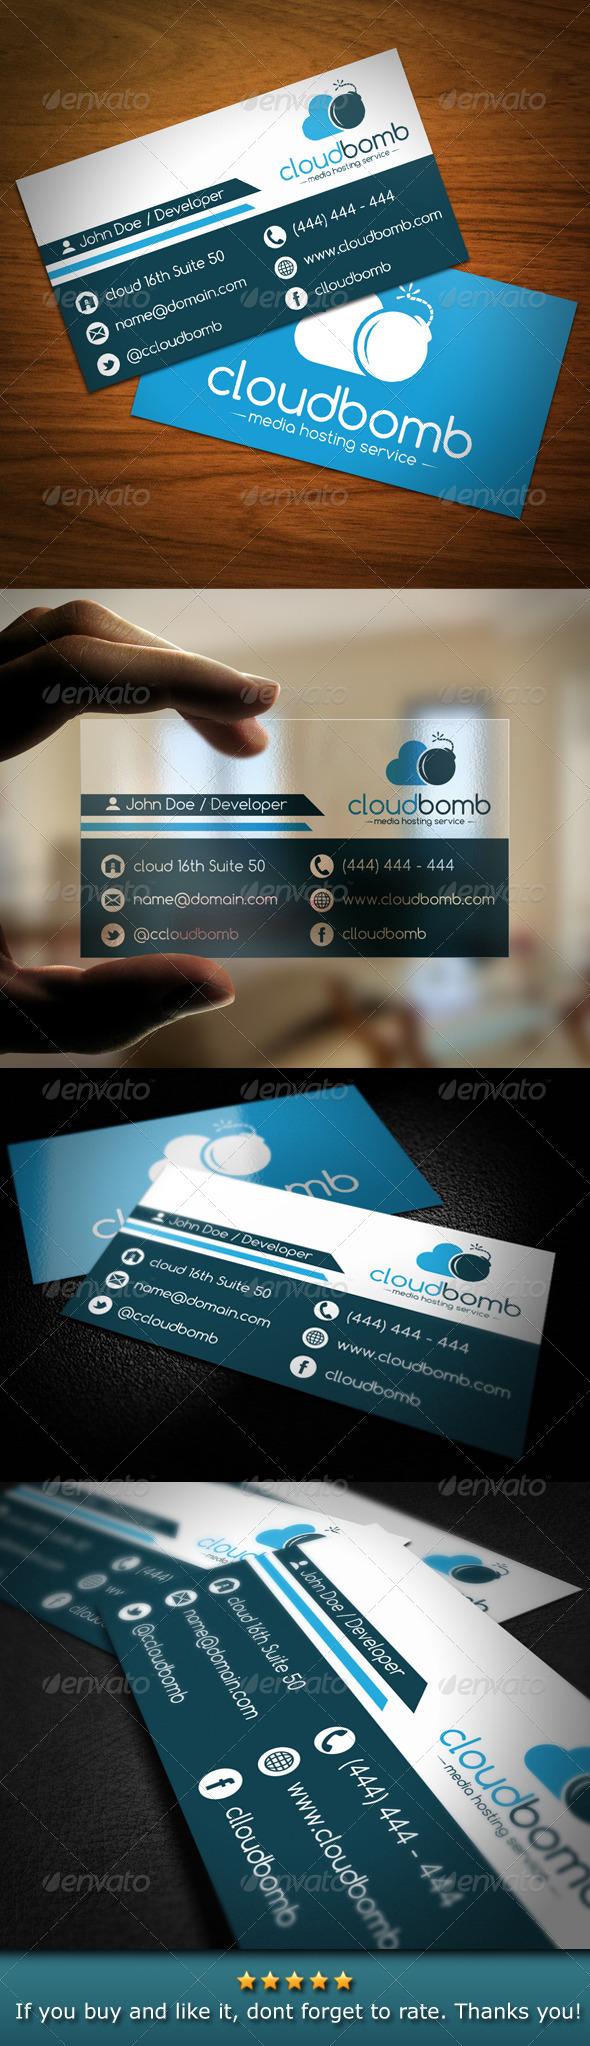 Media Cloud Bomb Business Card